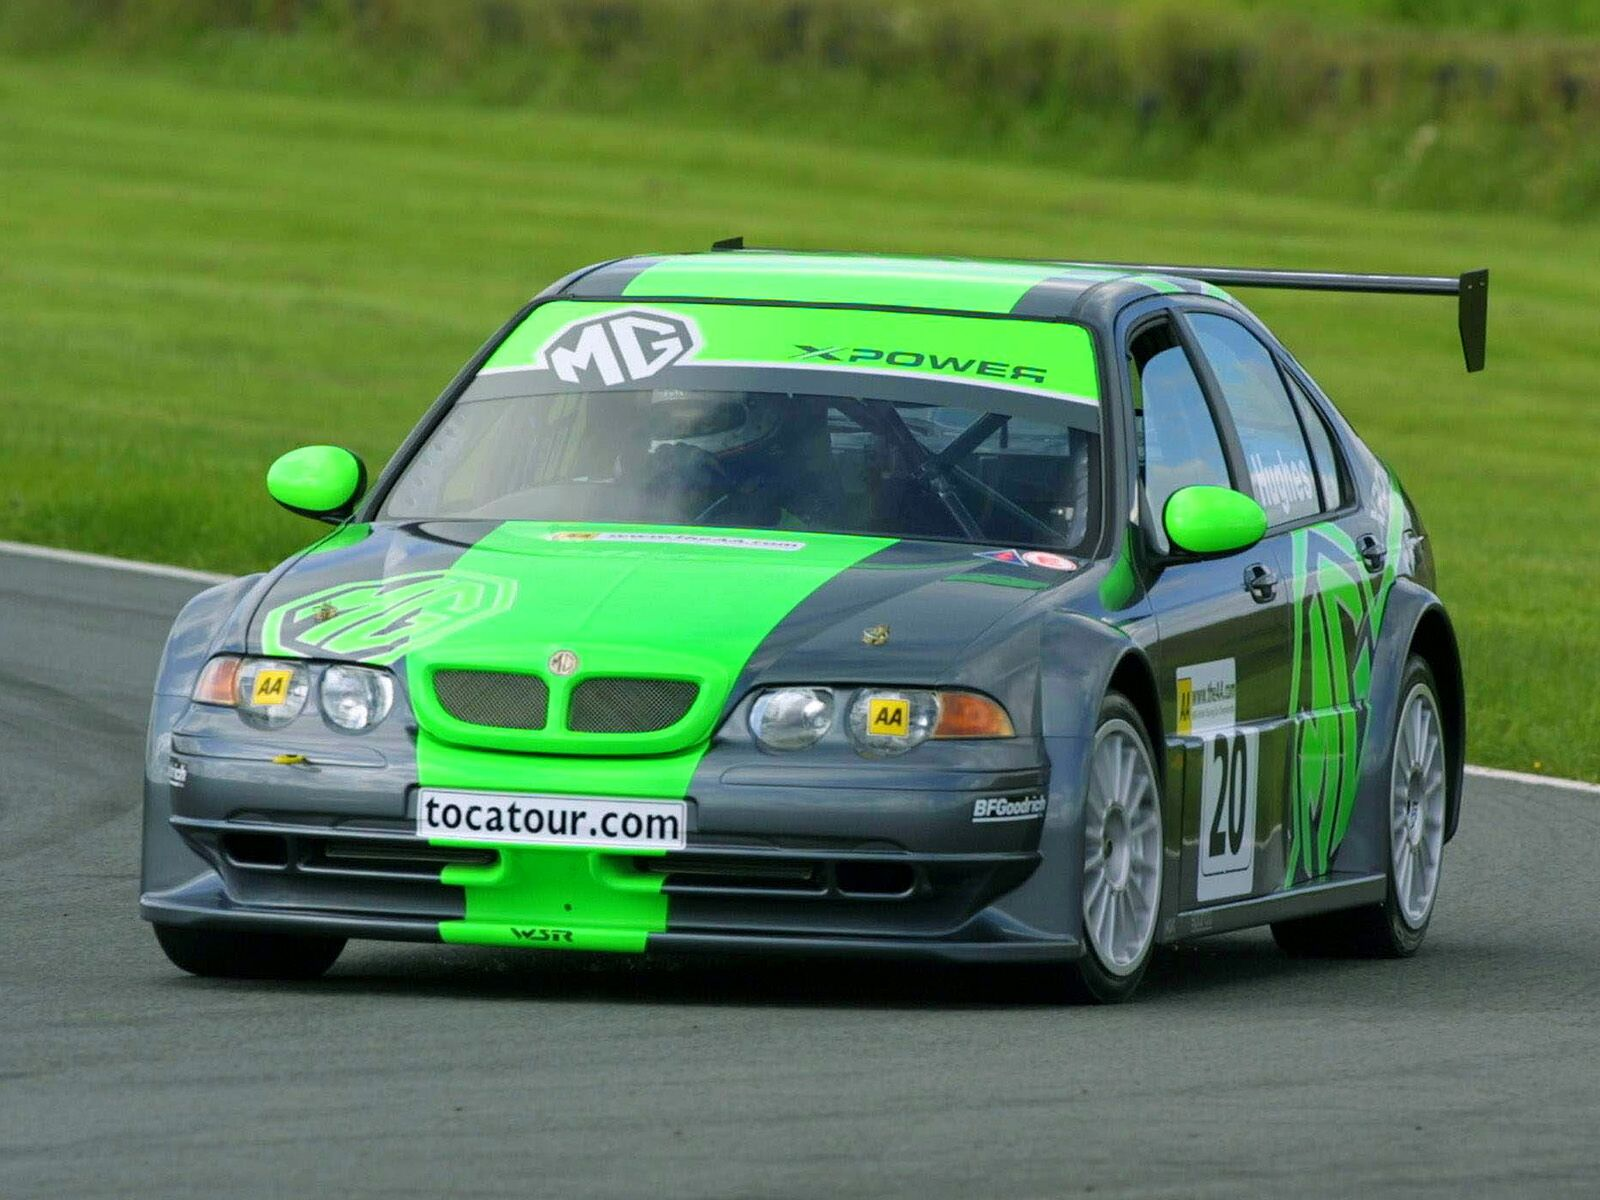 MG MG Racing photo 9257